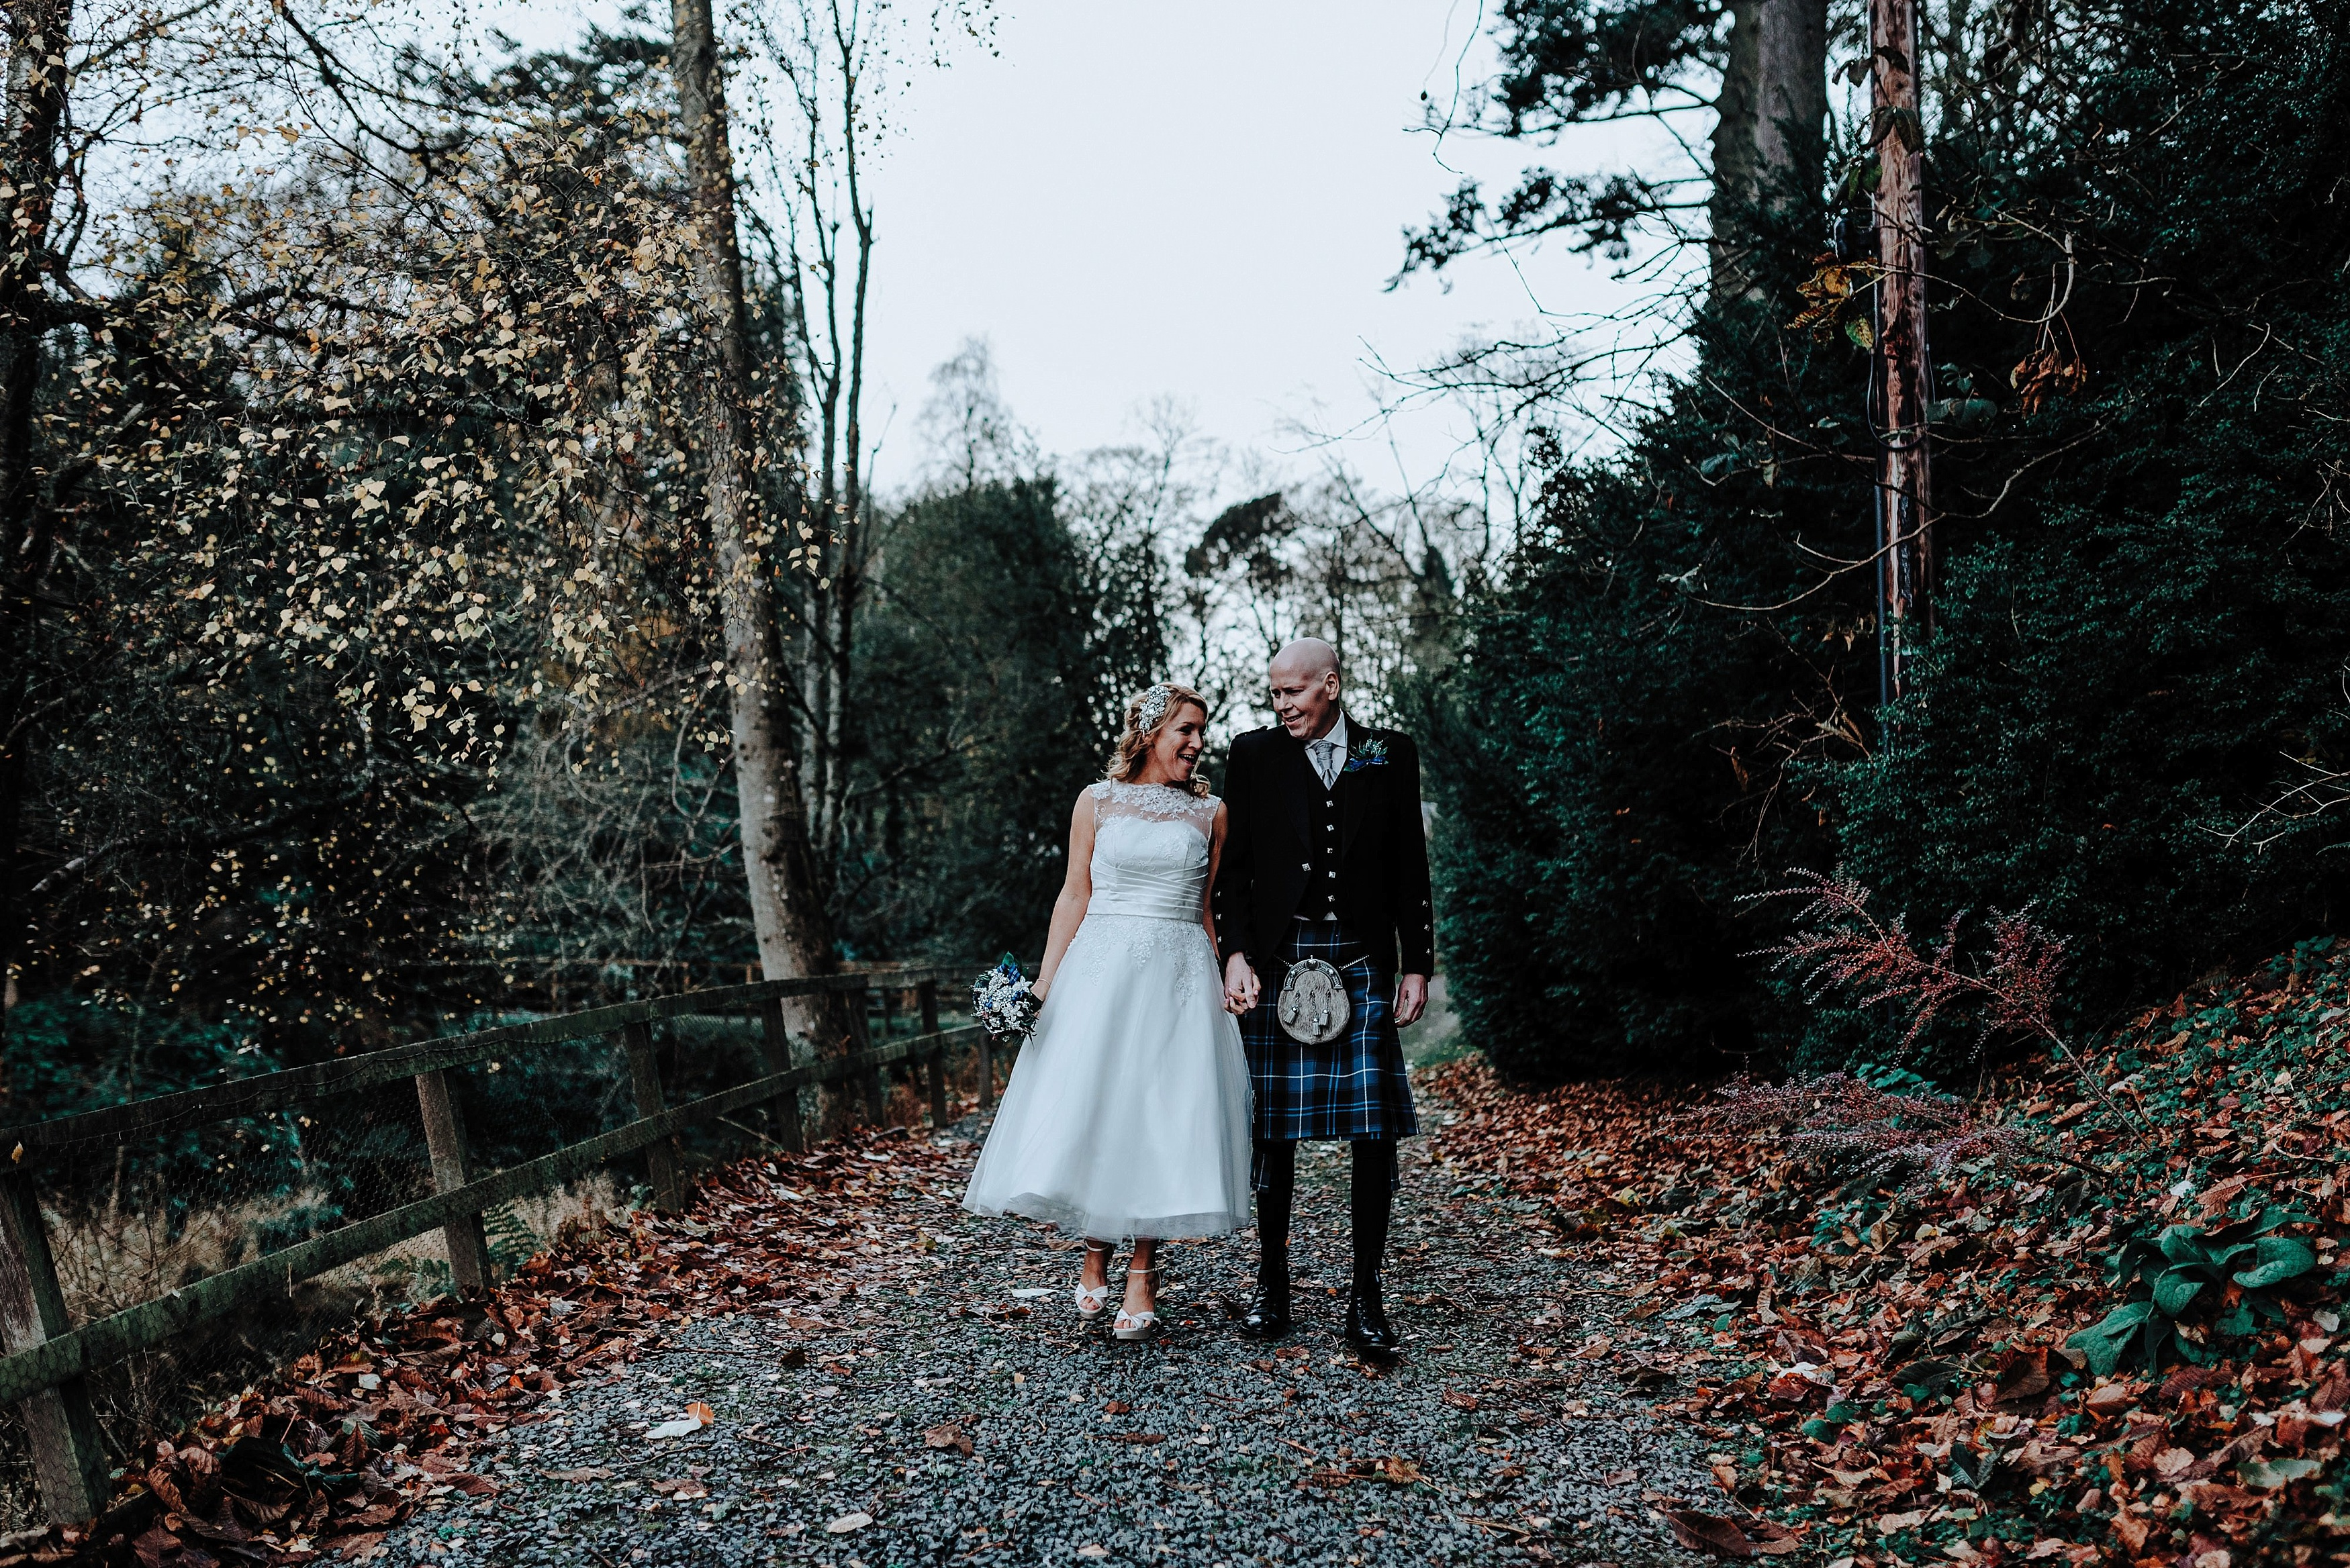 Bride and Groom at their Scottish Wedding